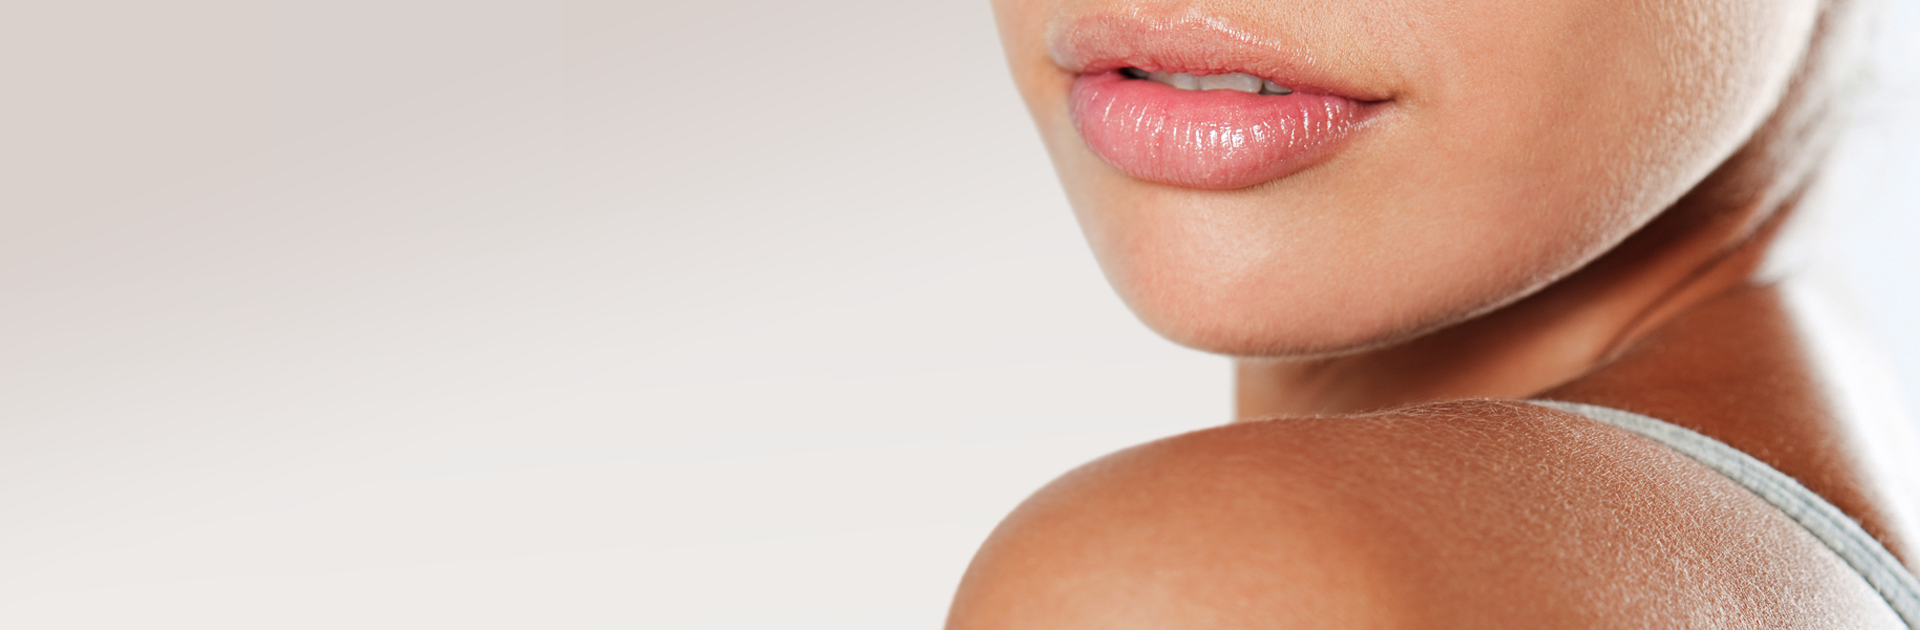 Enlargement or reduction of the lips using modern surgery